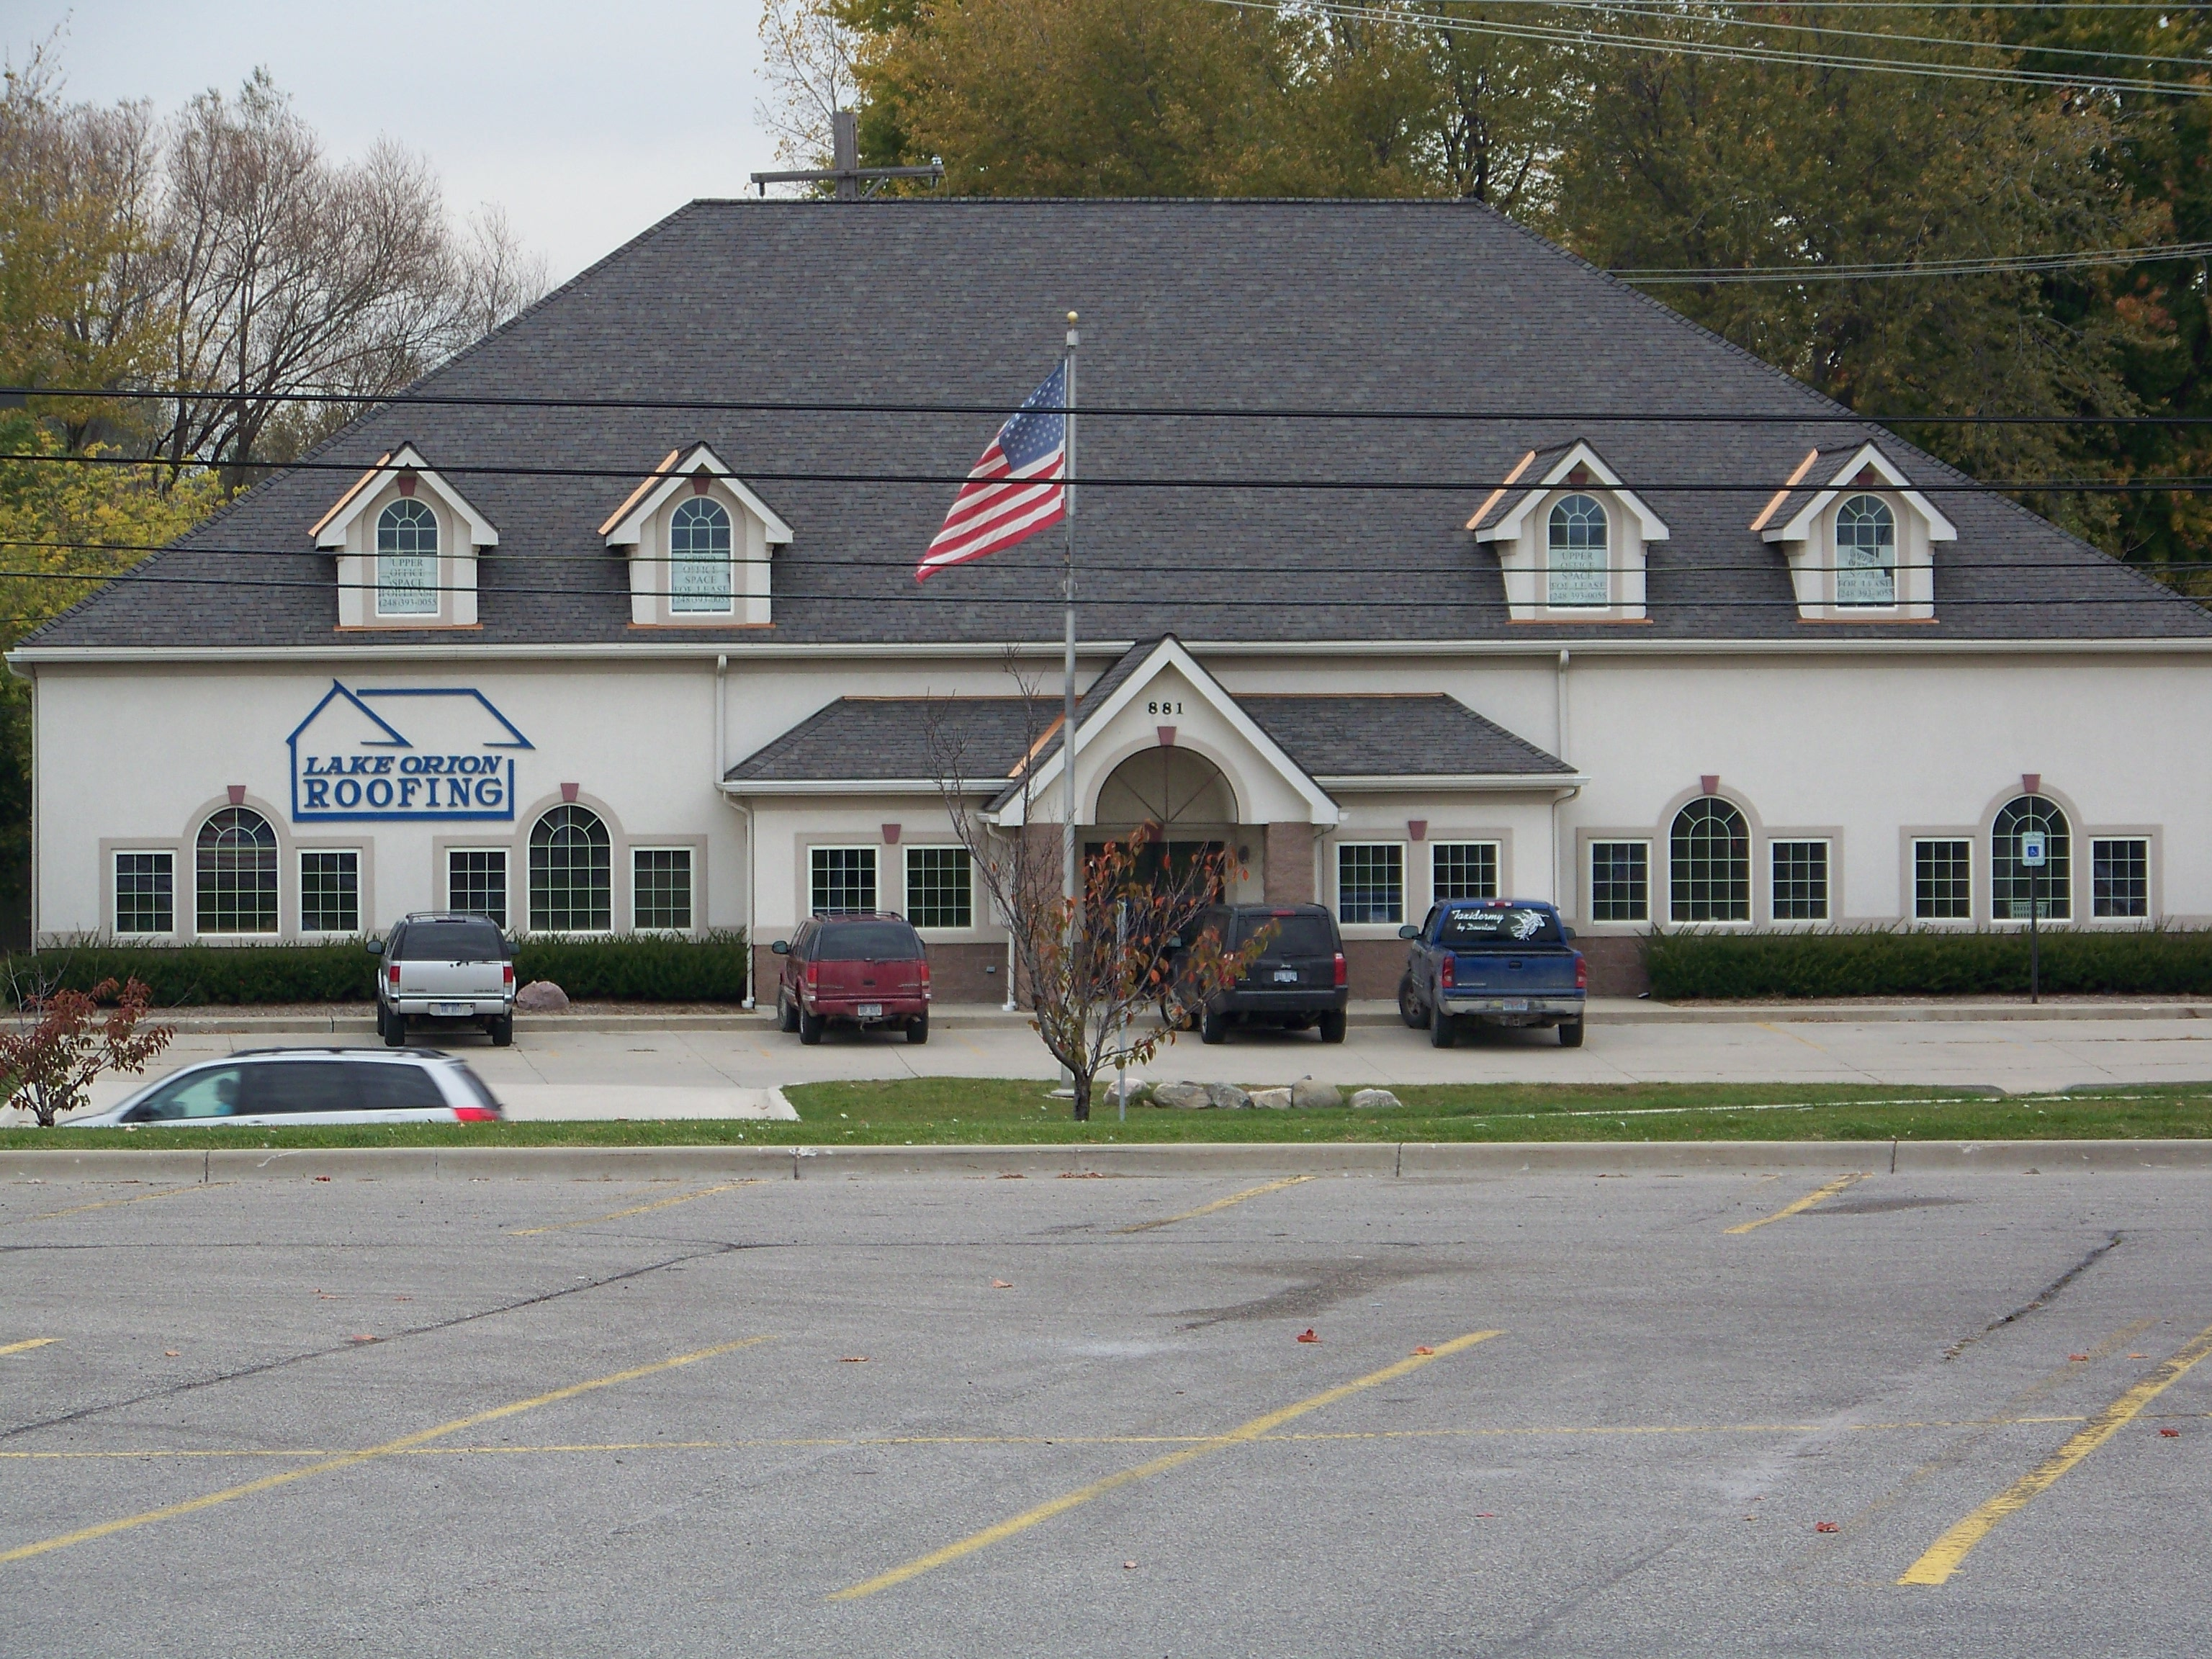 File:Lake Orion Roofing   Panoramio